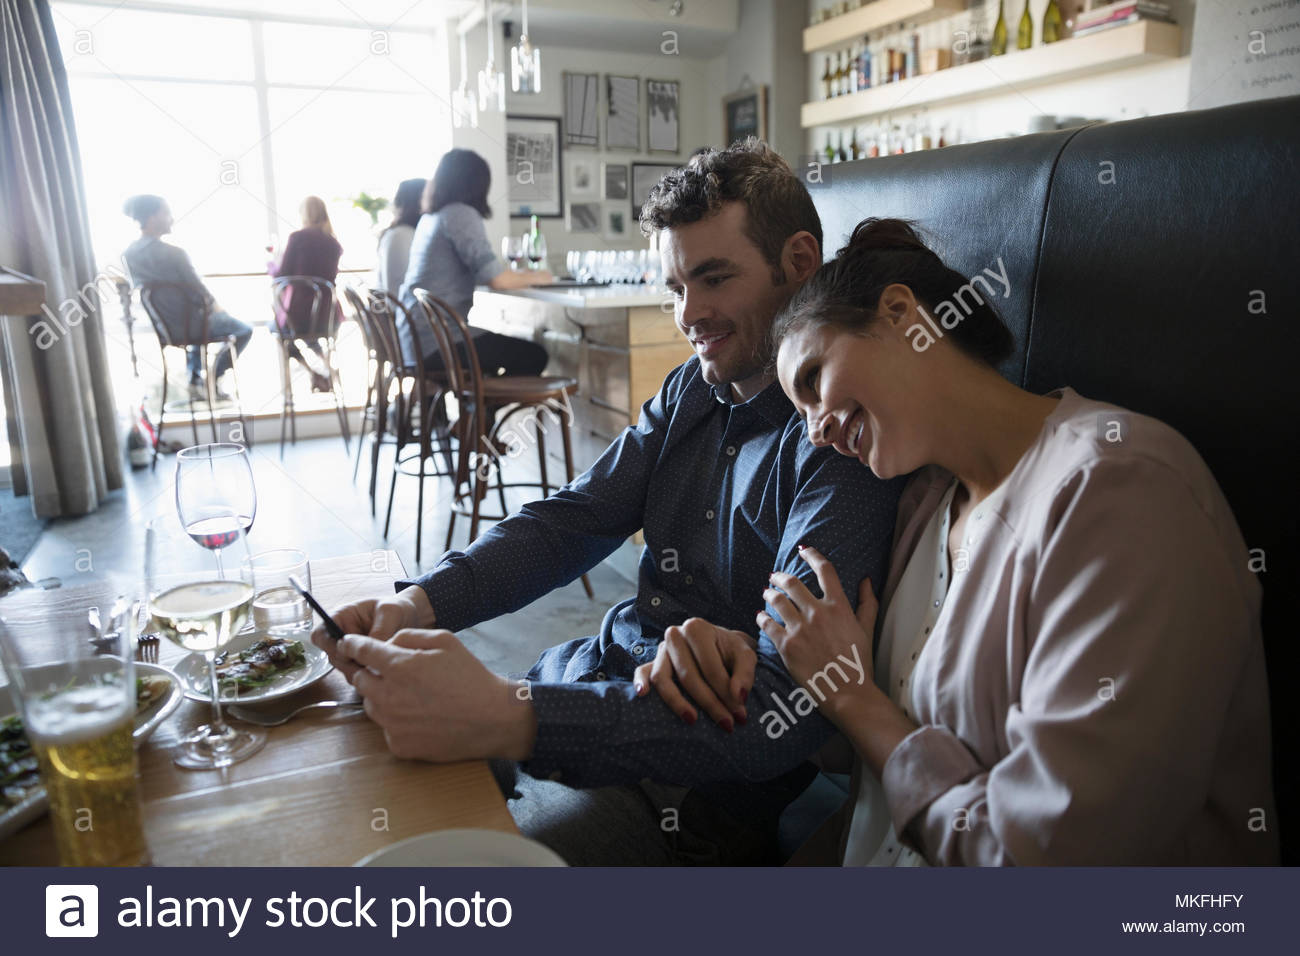 Affectionate young couple with smart phone at bar table - Stock Image